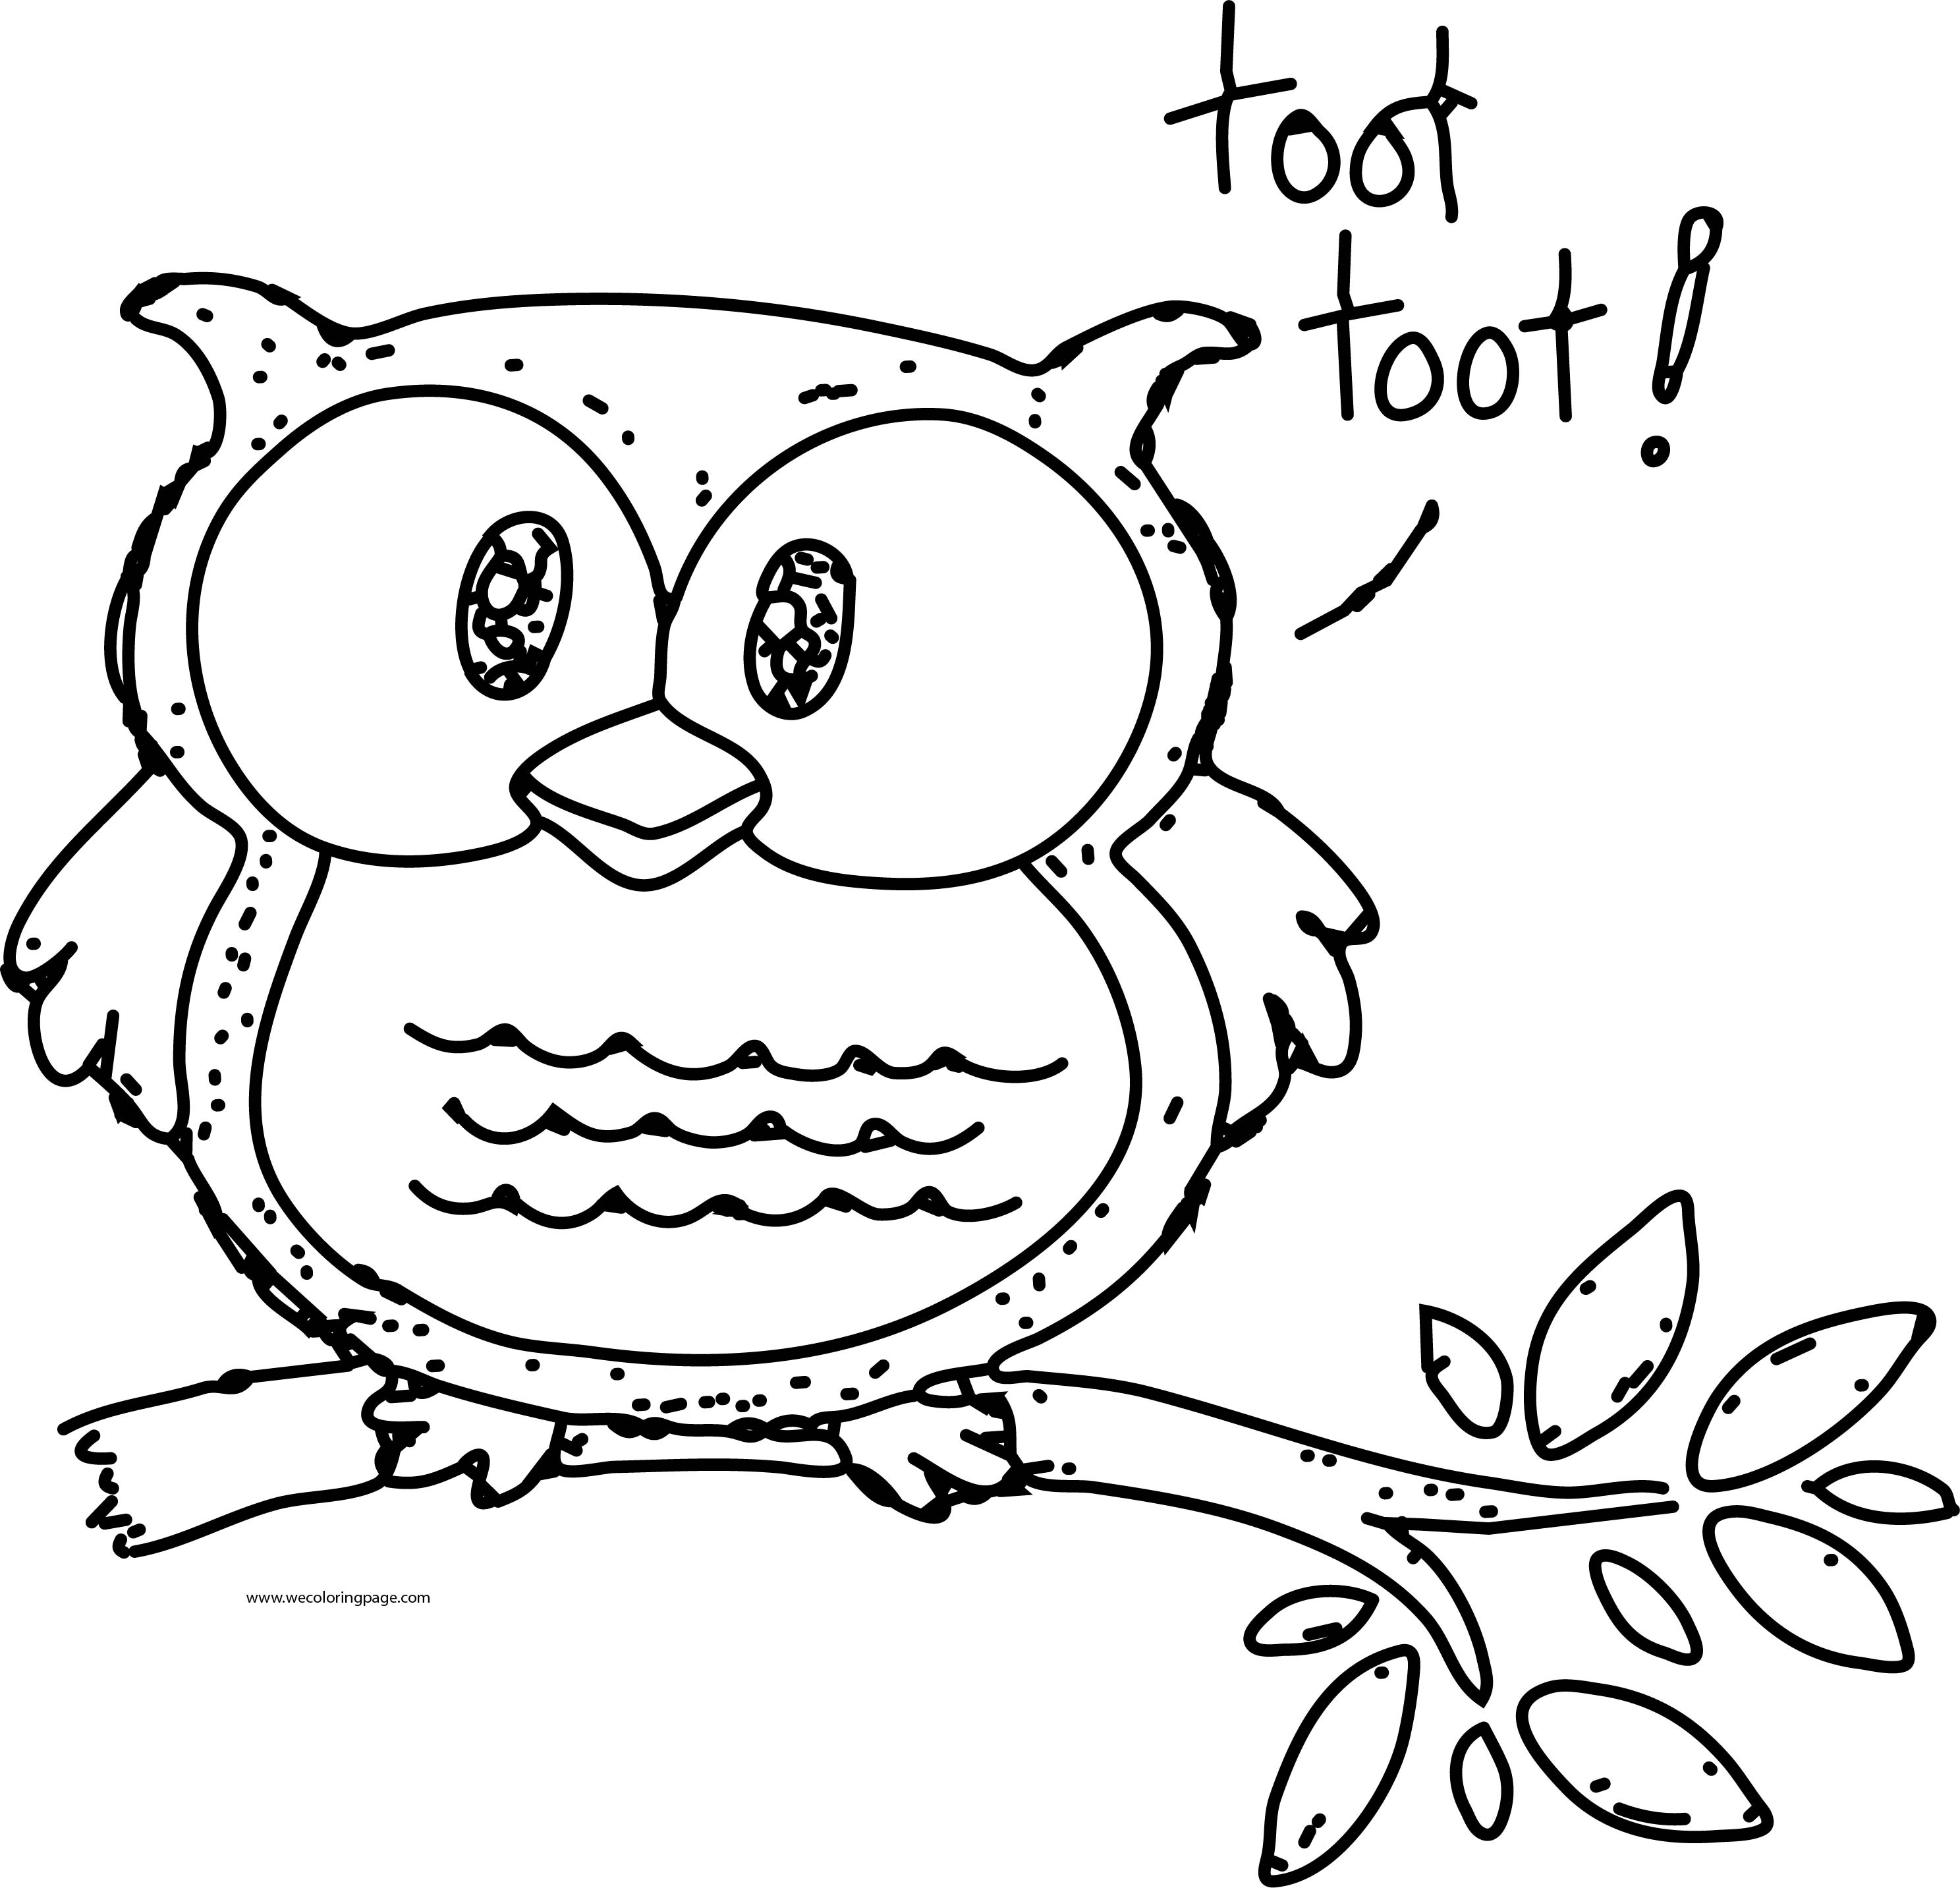 Toot Toot Cute Owl Coloring Page